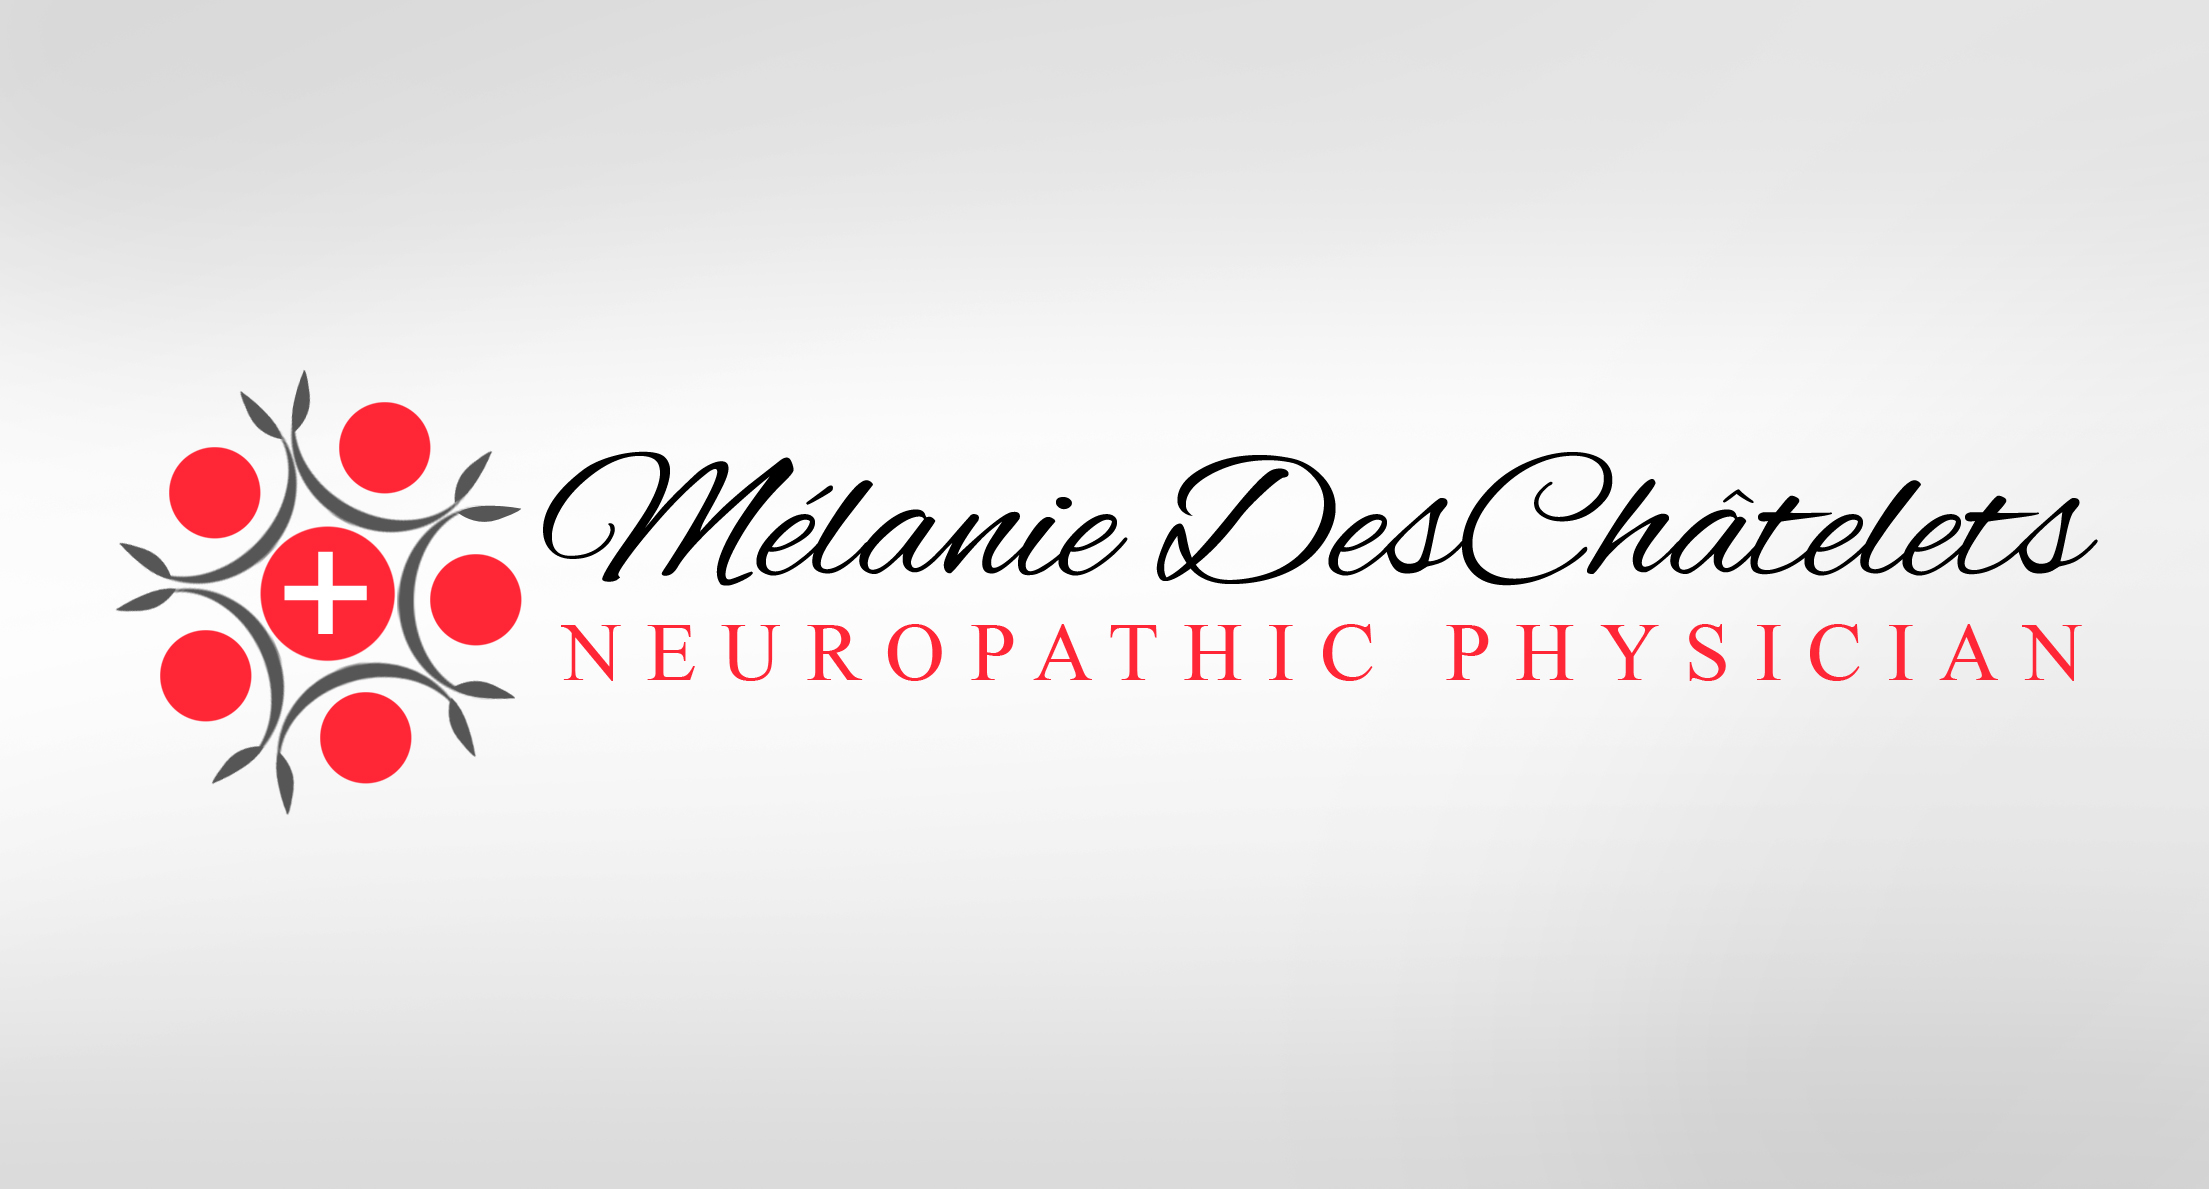 Logo Design by Sandip Kumar - Entry No. 225 in the Logo Design Contest Artistic Logo Design for Dr Mélanie DesChâtelets.